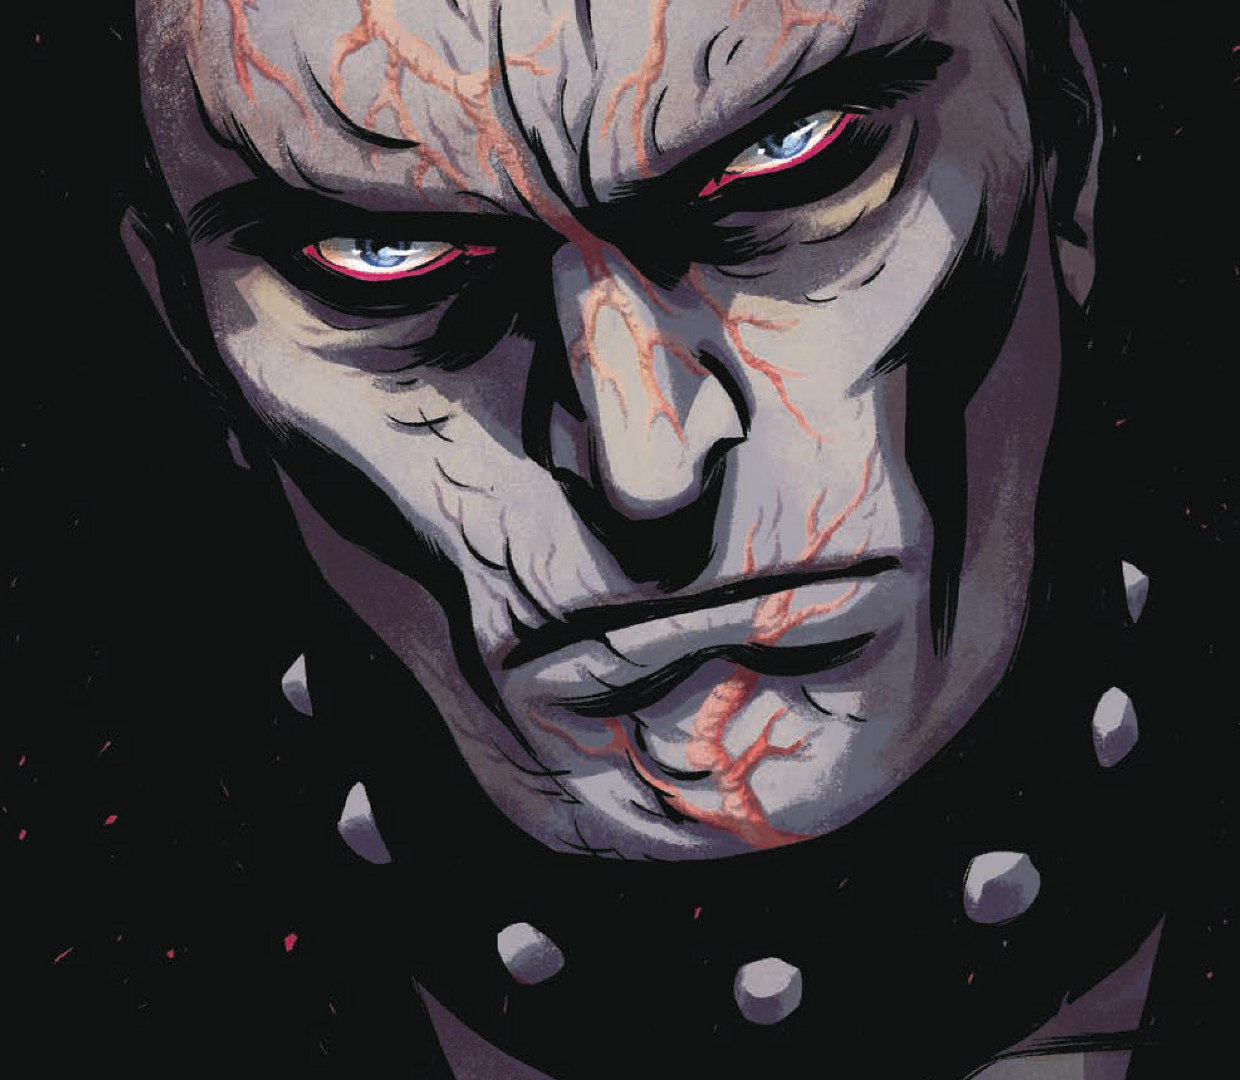 'Reaver' #10 review